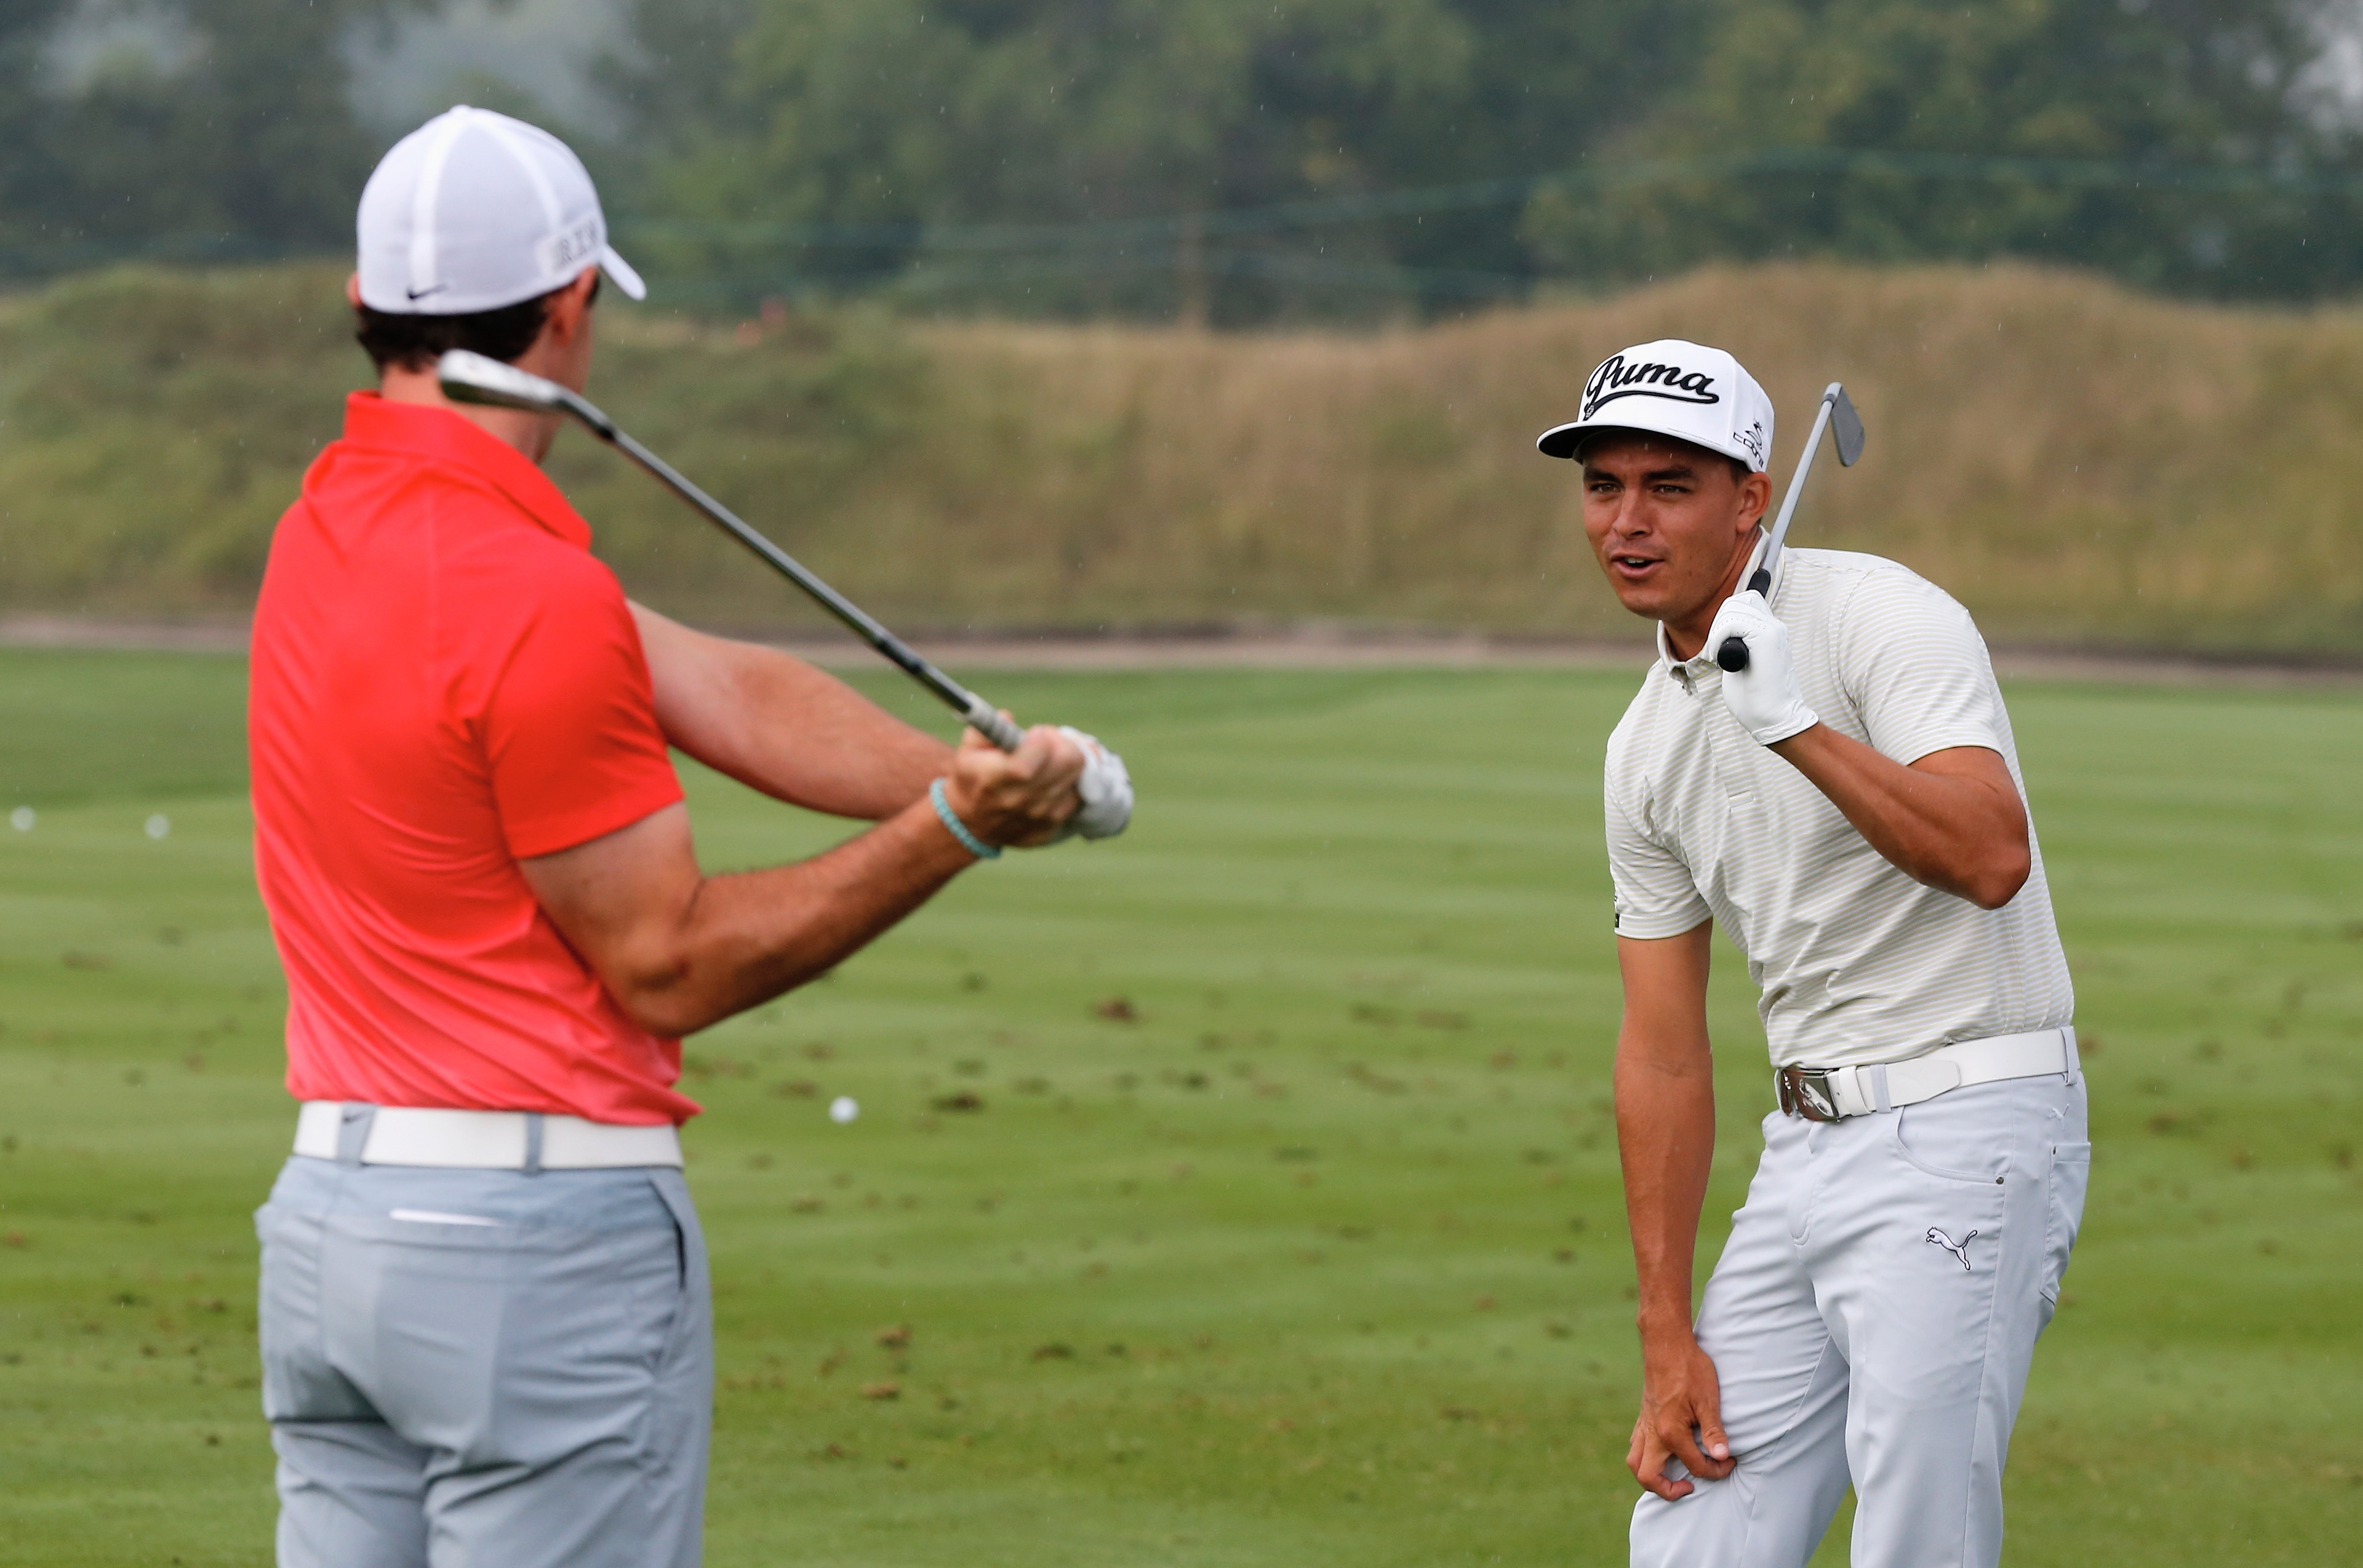 McIlroy is world number one, while Fowler is world number five (Photo: Getty Images)